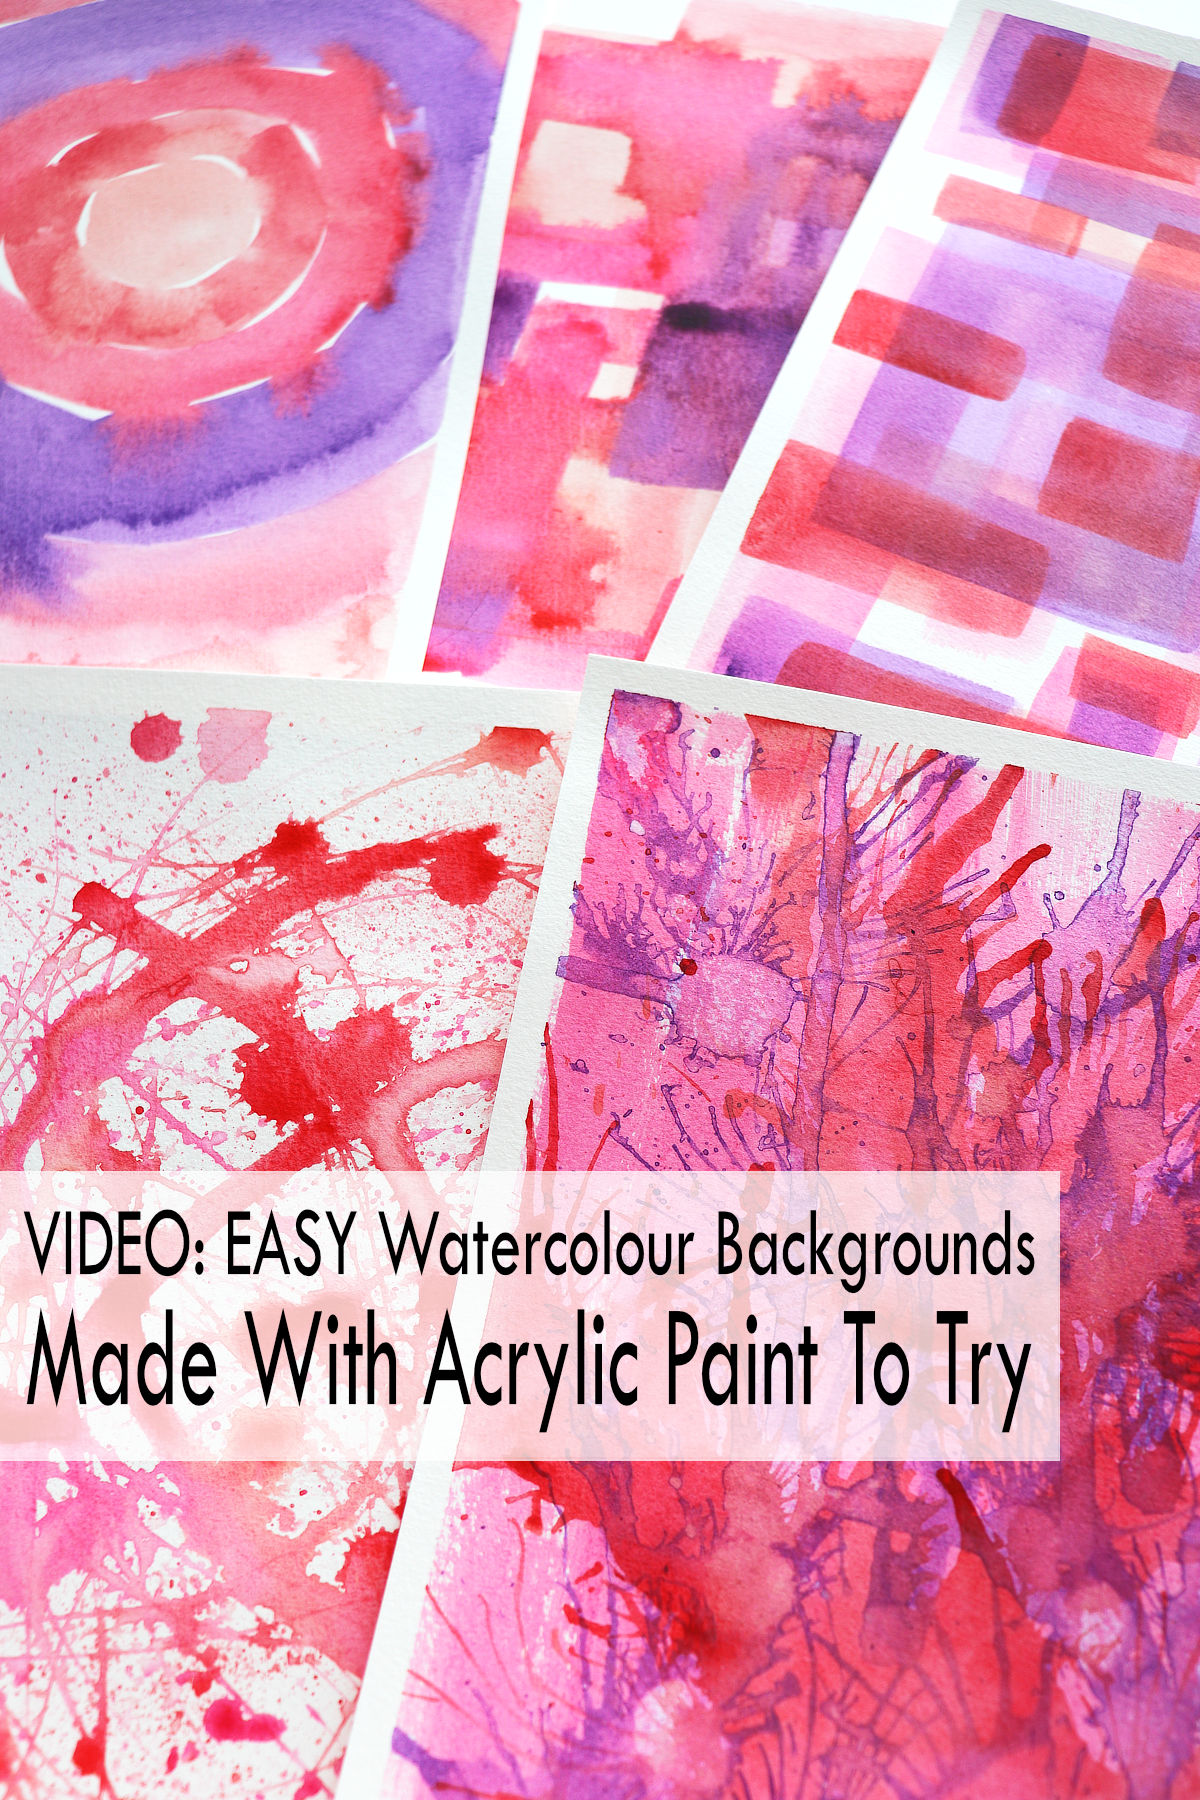 5 watercolour backgrounds made with acrylic paint by Kim Dellow